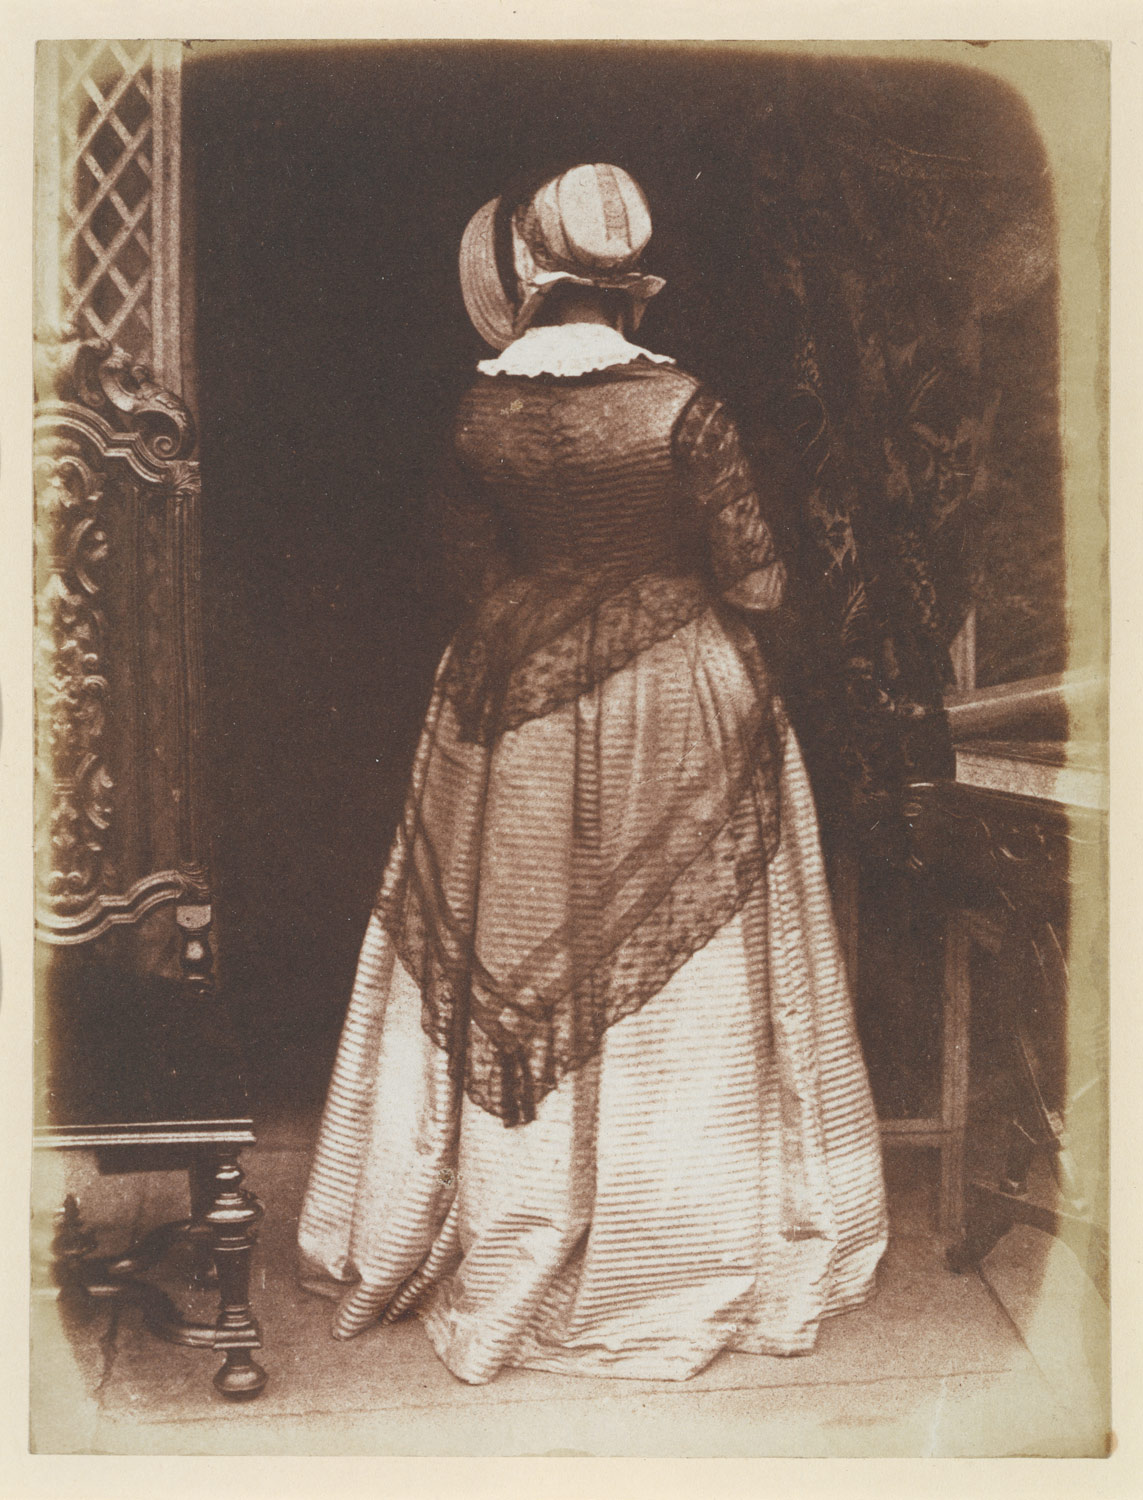 Fotó: David Octavius Hill and Robert Adamson: Lady Ruthven, 1845 (megjelent: Camera Work 11.; 1905)